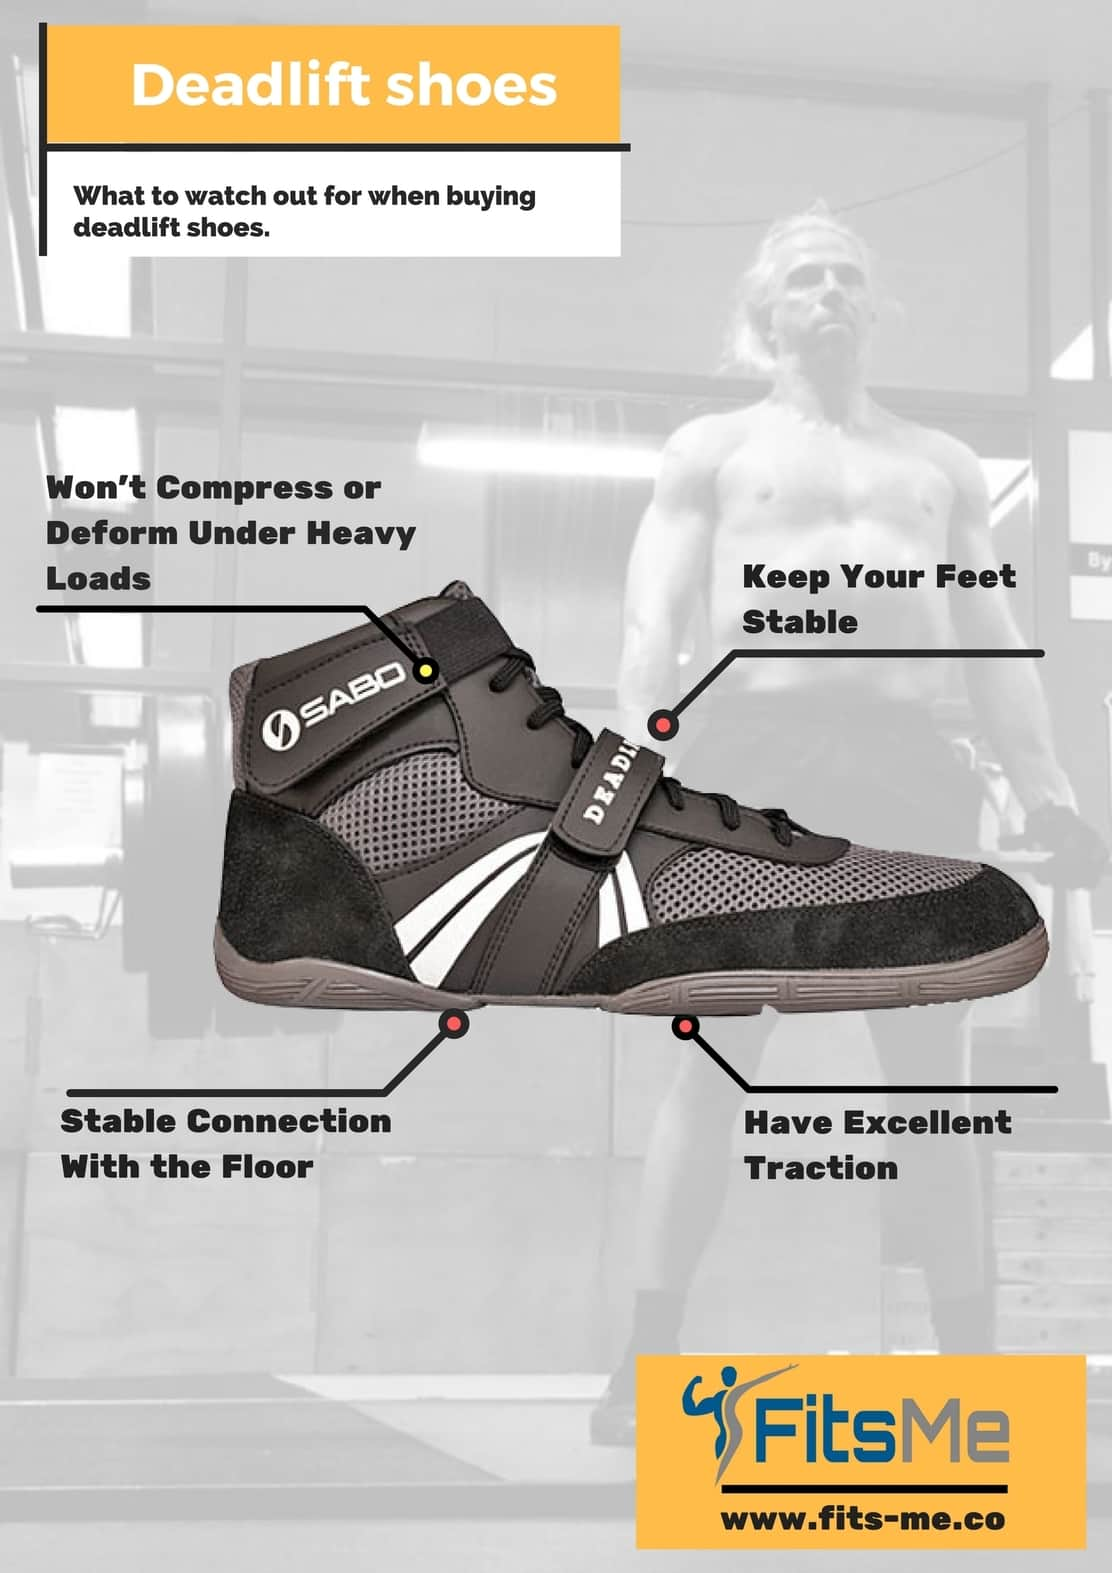 042602227ef245 The 7 Best Deadlift Shoes you can buy in 2018 - Fits-Me.co